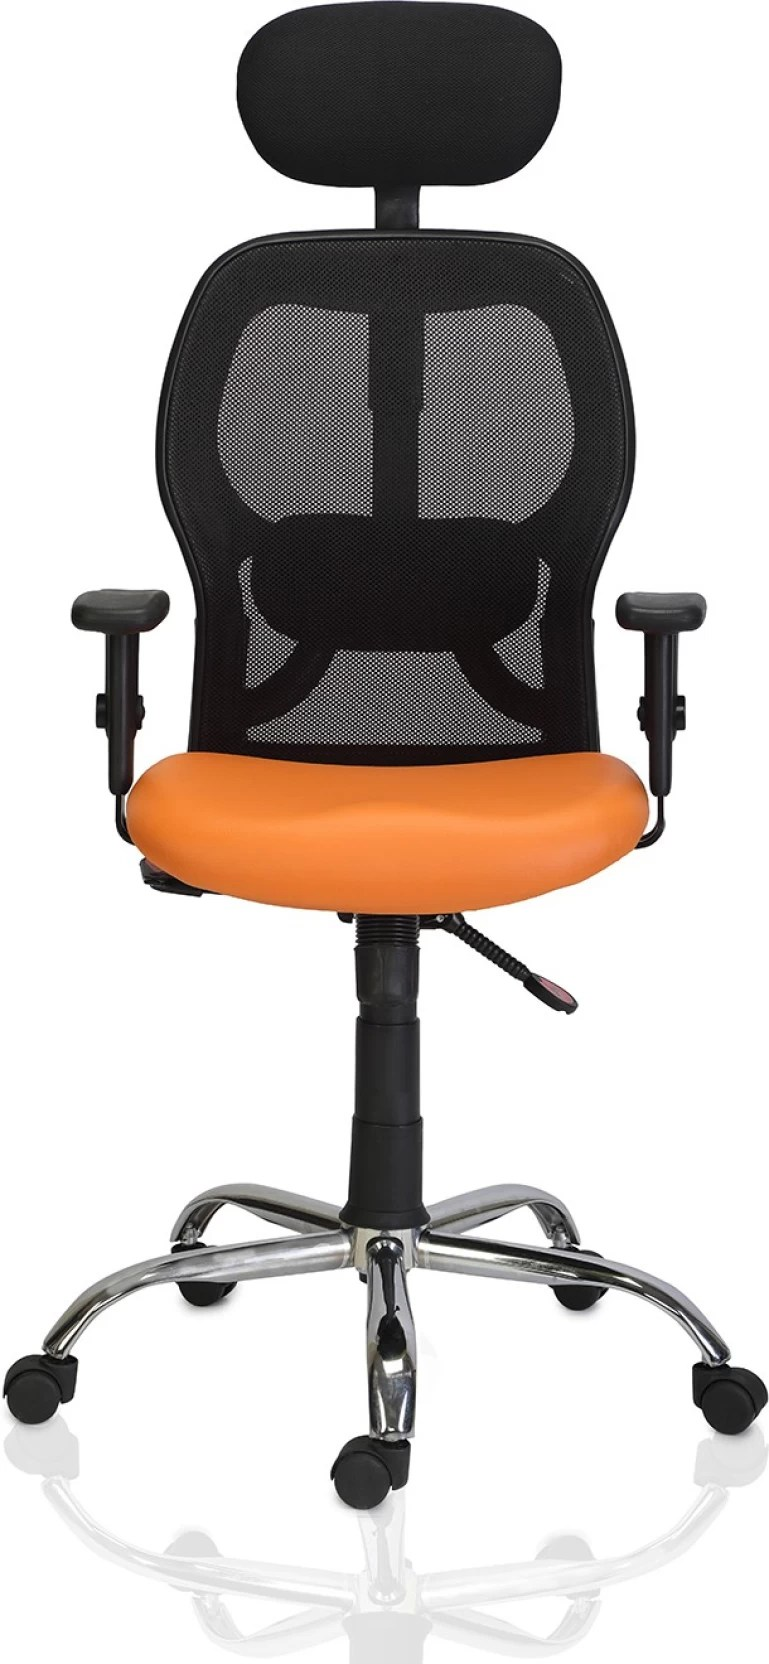 Orange Office Chairs Green Soul New York High Back Mesh Office Chair Orange Leatherette Office Executive Chair